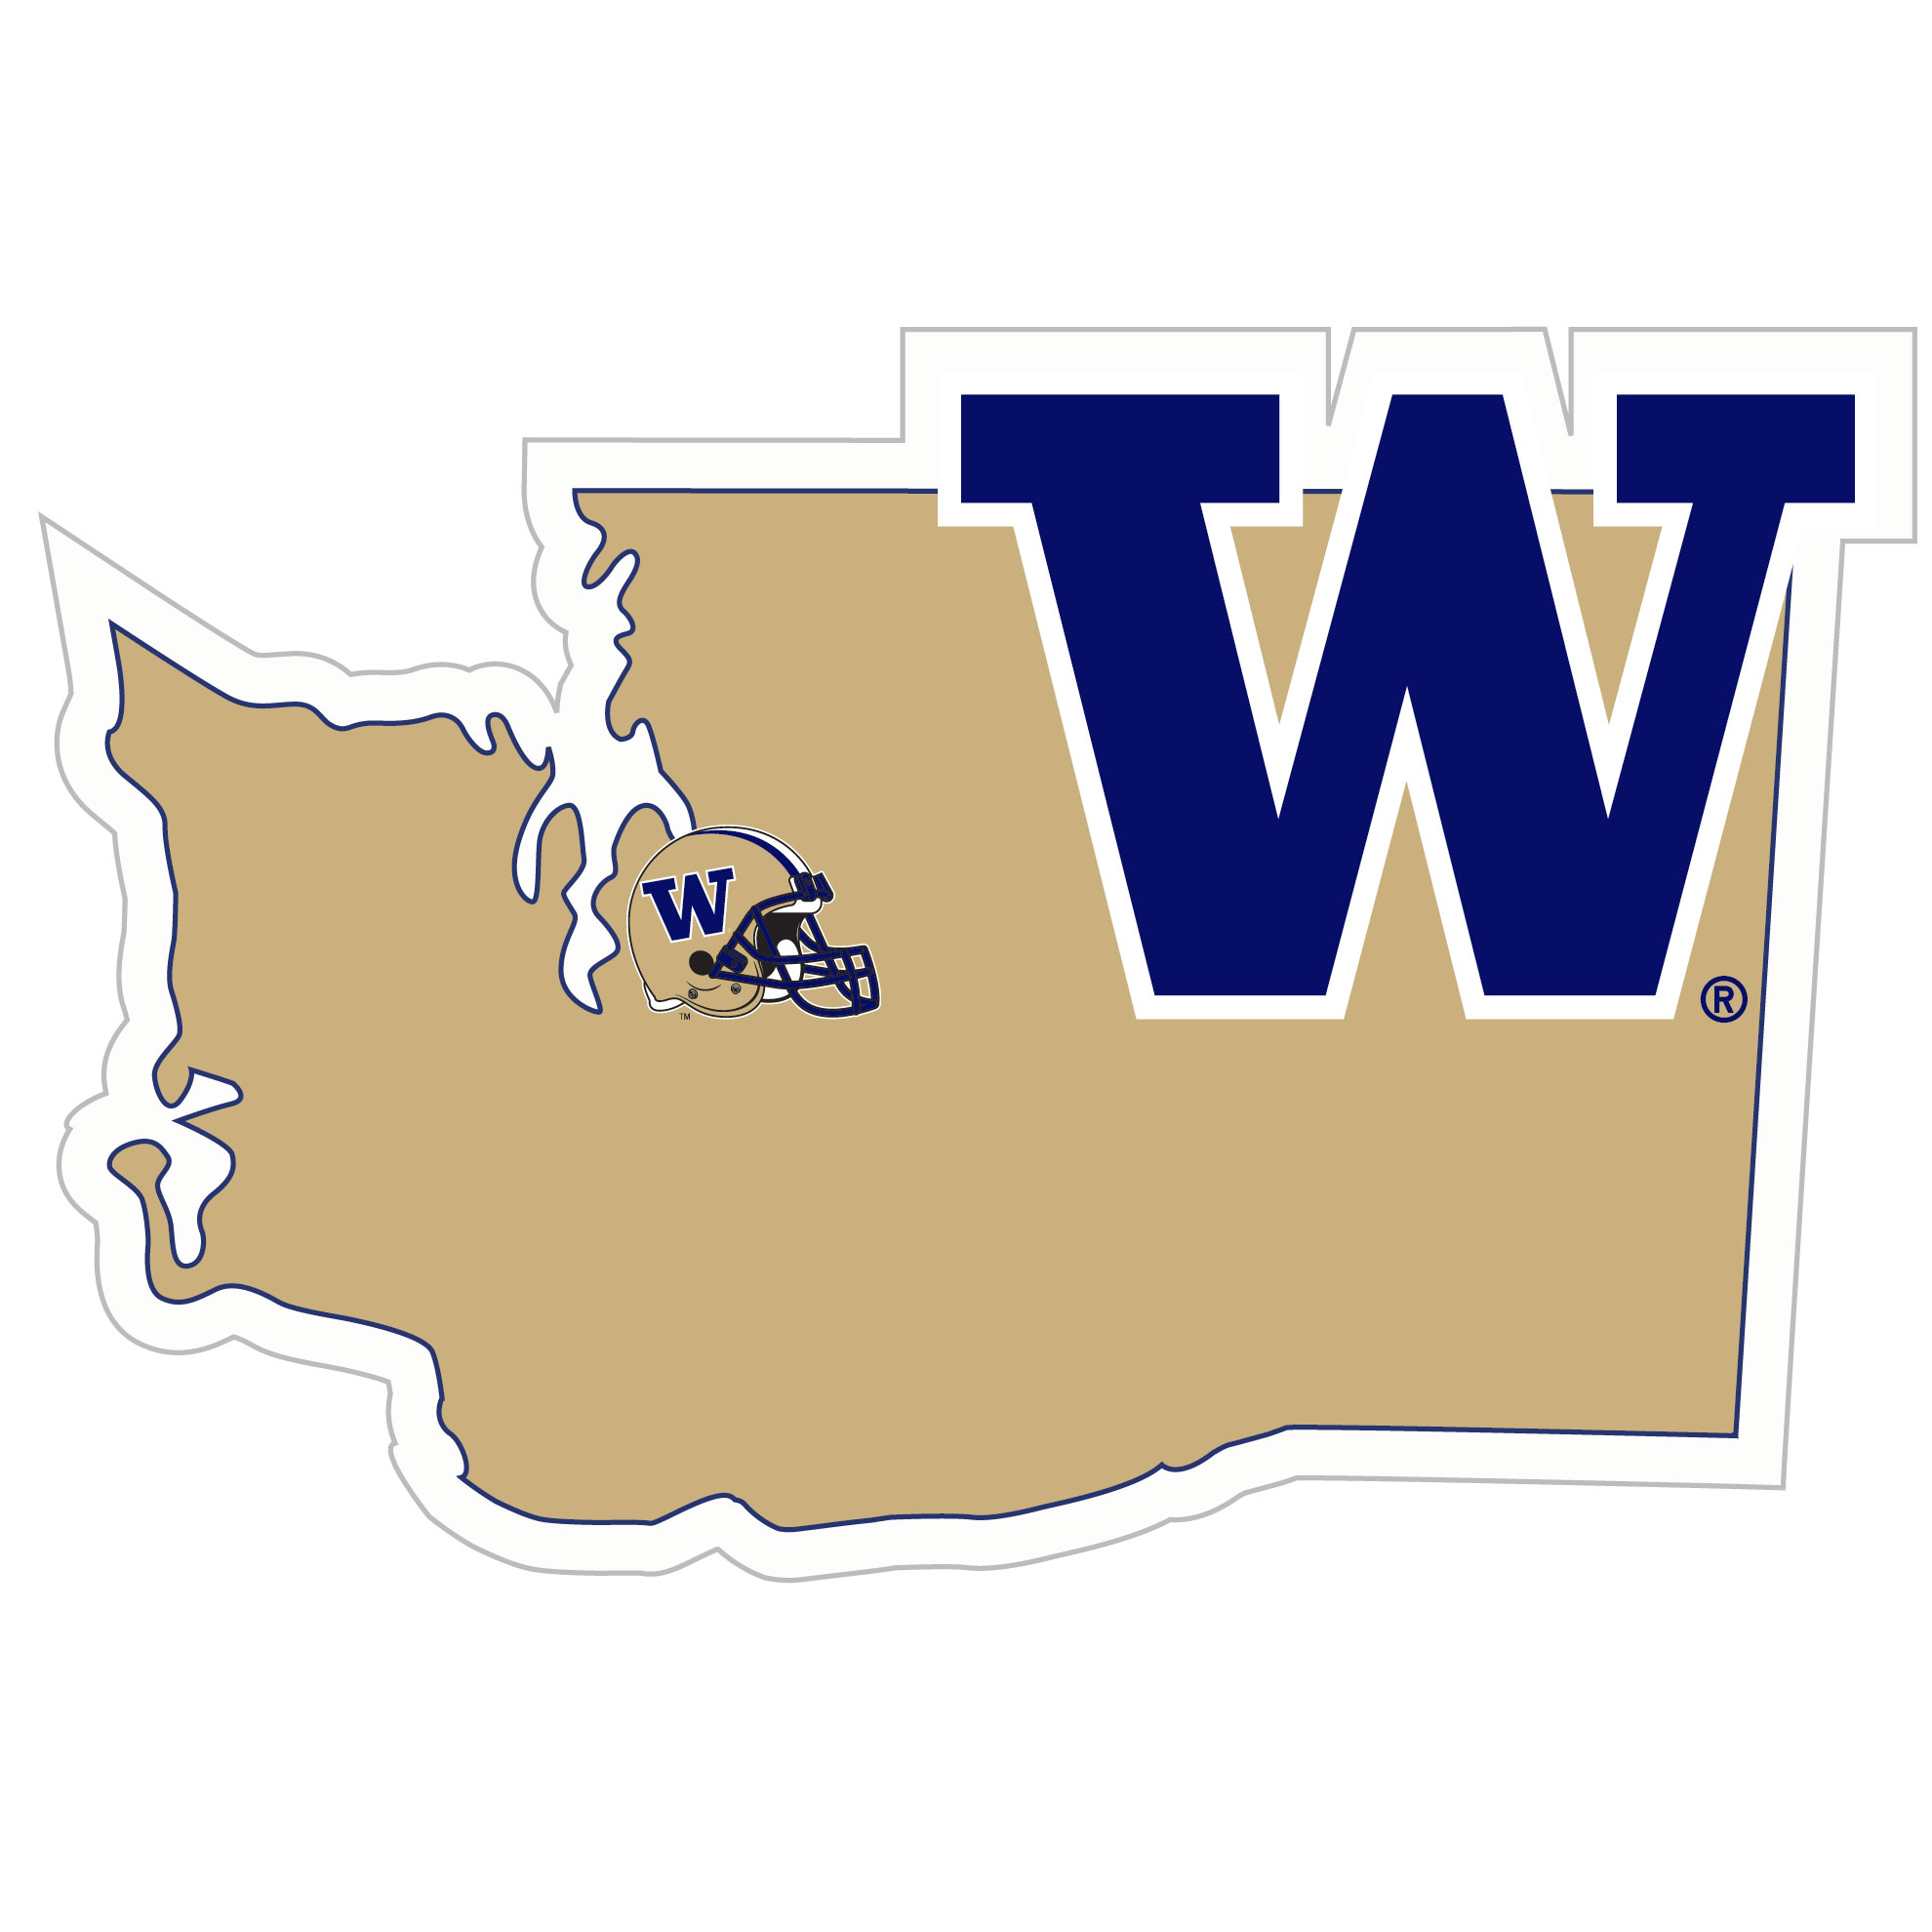 Washington Huskies Home State 11 Inch Magnet - Whether you are caravaning to the game or having a tailgate party make sure you car is wearing its fan gear with our extra large, 11 inch Washington Huskies home state magnets. These striking magnets can be easily placed on for game day and removed without he residue left by decals. The design features a bright state outline with the location of the team highlighted with a football and a large team logo.